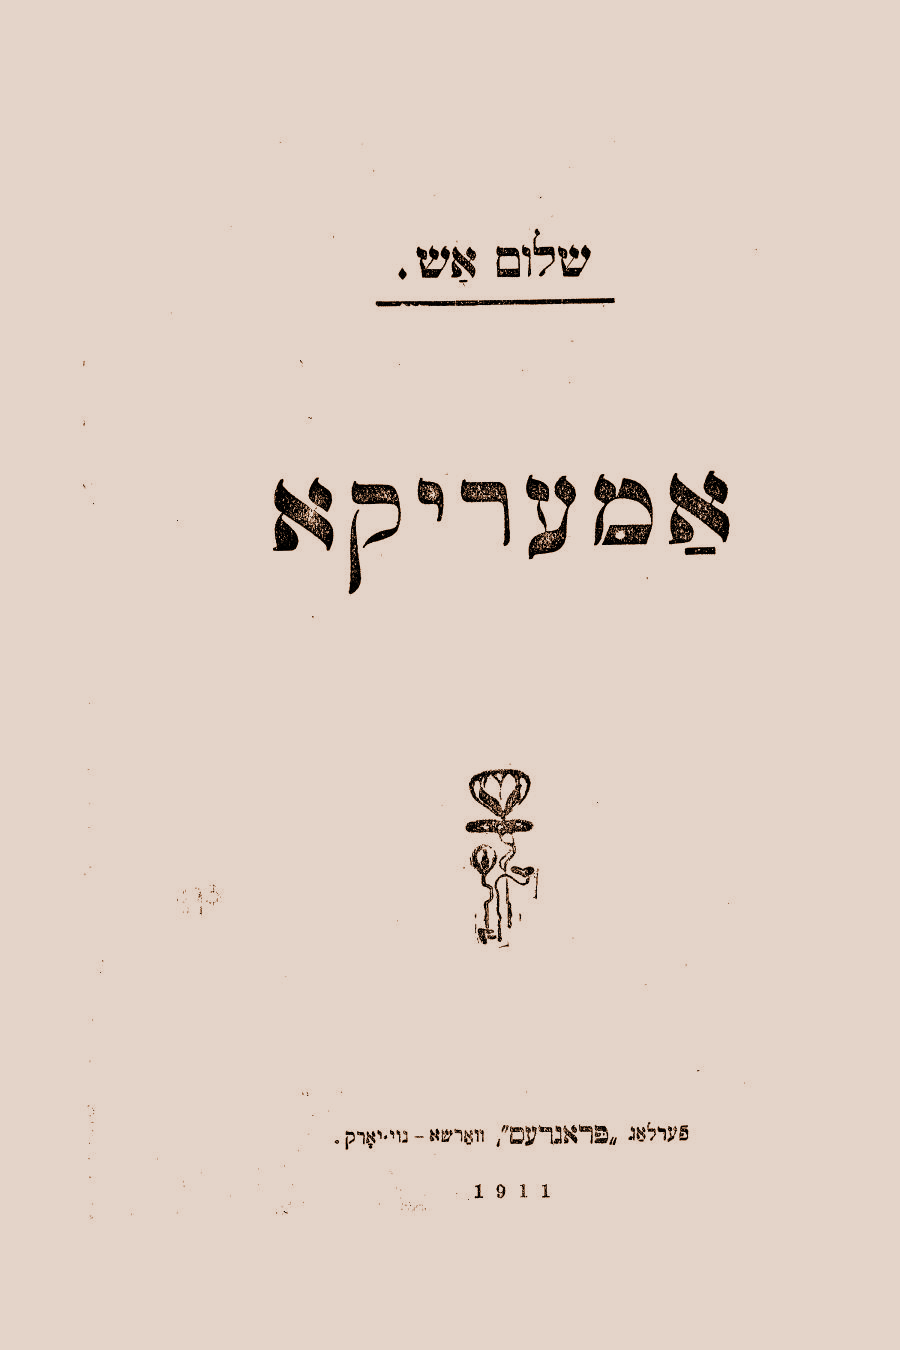 Sholem Asch,America[New York; 1911] - A sentimental (at least in a translation replete with thous) Yiddish novel about a Jewish family's emigration to the big alien metropolis of New York. Asch wrote it in Poland in 1911, having traveled to America the two previous years; he would spend the next twenty years moving between Europe and North America, until World War II made it expedient to remain on the western side of the Atlantic. As an early example of his conventional, pious, and often sharply-observed fiction (he would be famous by the end of the decade, and was a best-seller in multiple languages into the 1950s), it's distinguished primarily by its lightness and brevity: midcentury fiction would expend a thousand pages on more or less the same plot.August 7, 2017